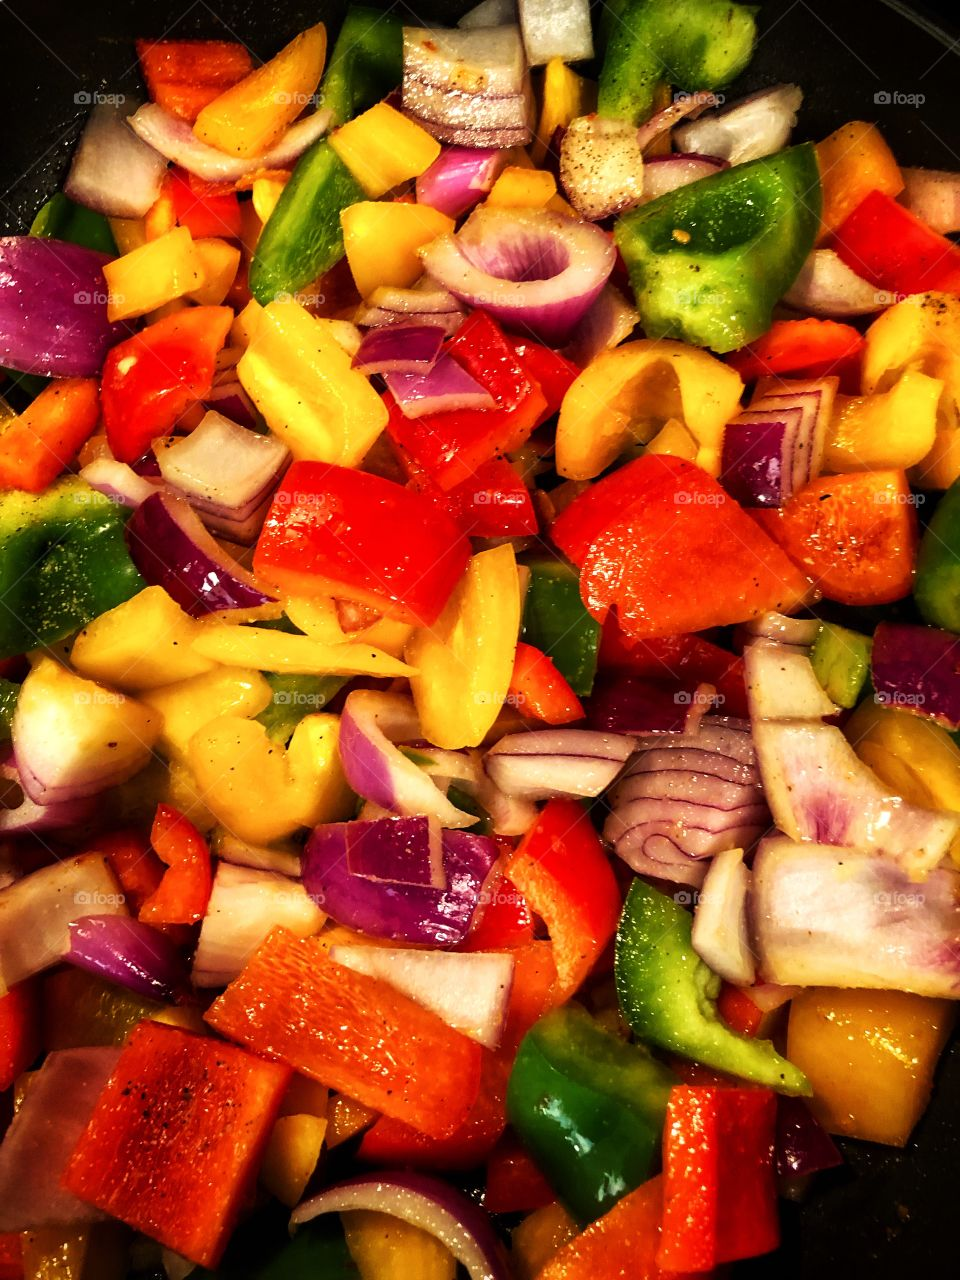 Clash of colors chopped and cooking red yellow green bell peppers and purple onion meal prep